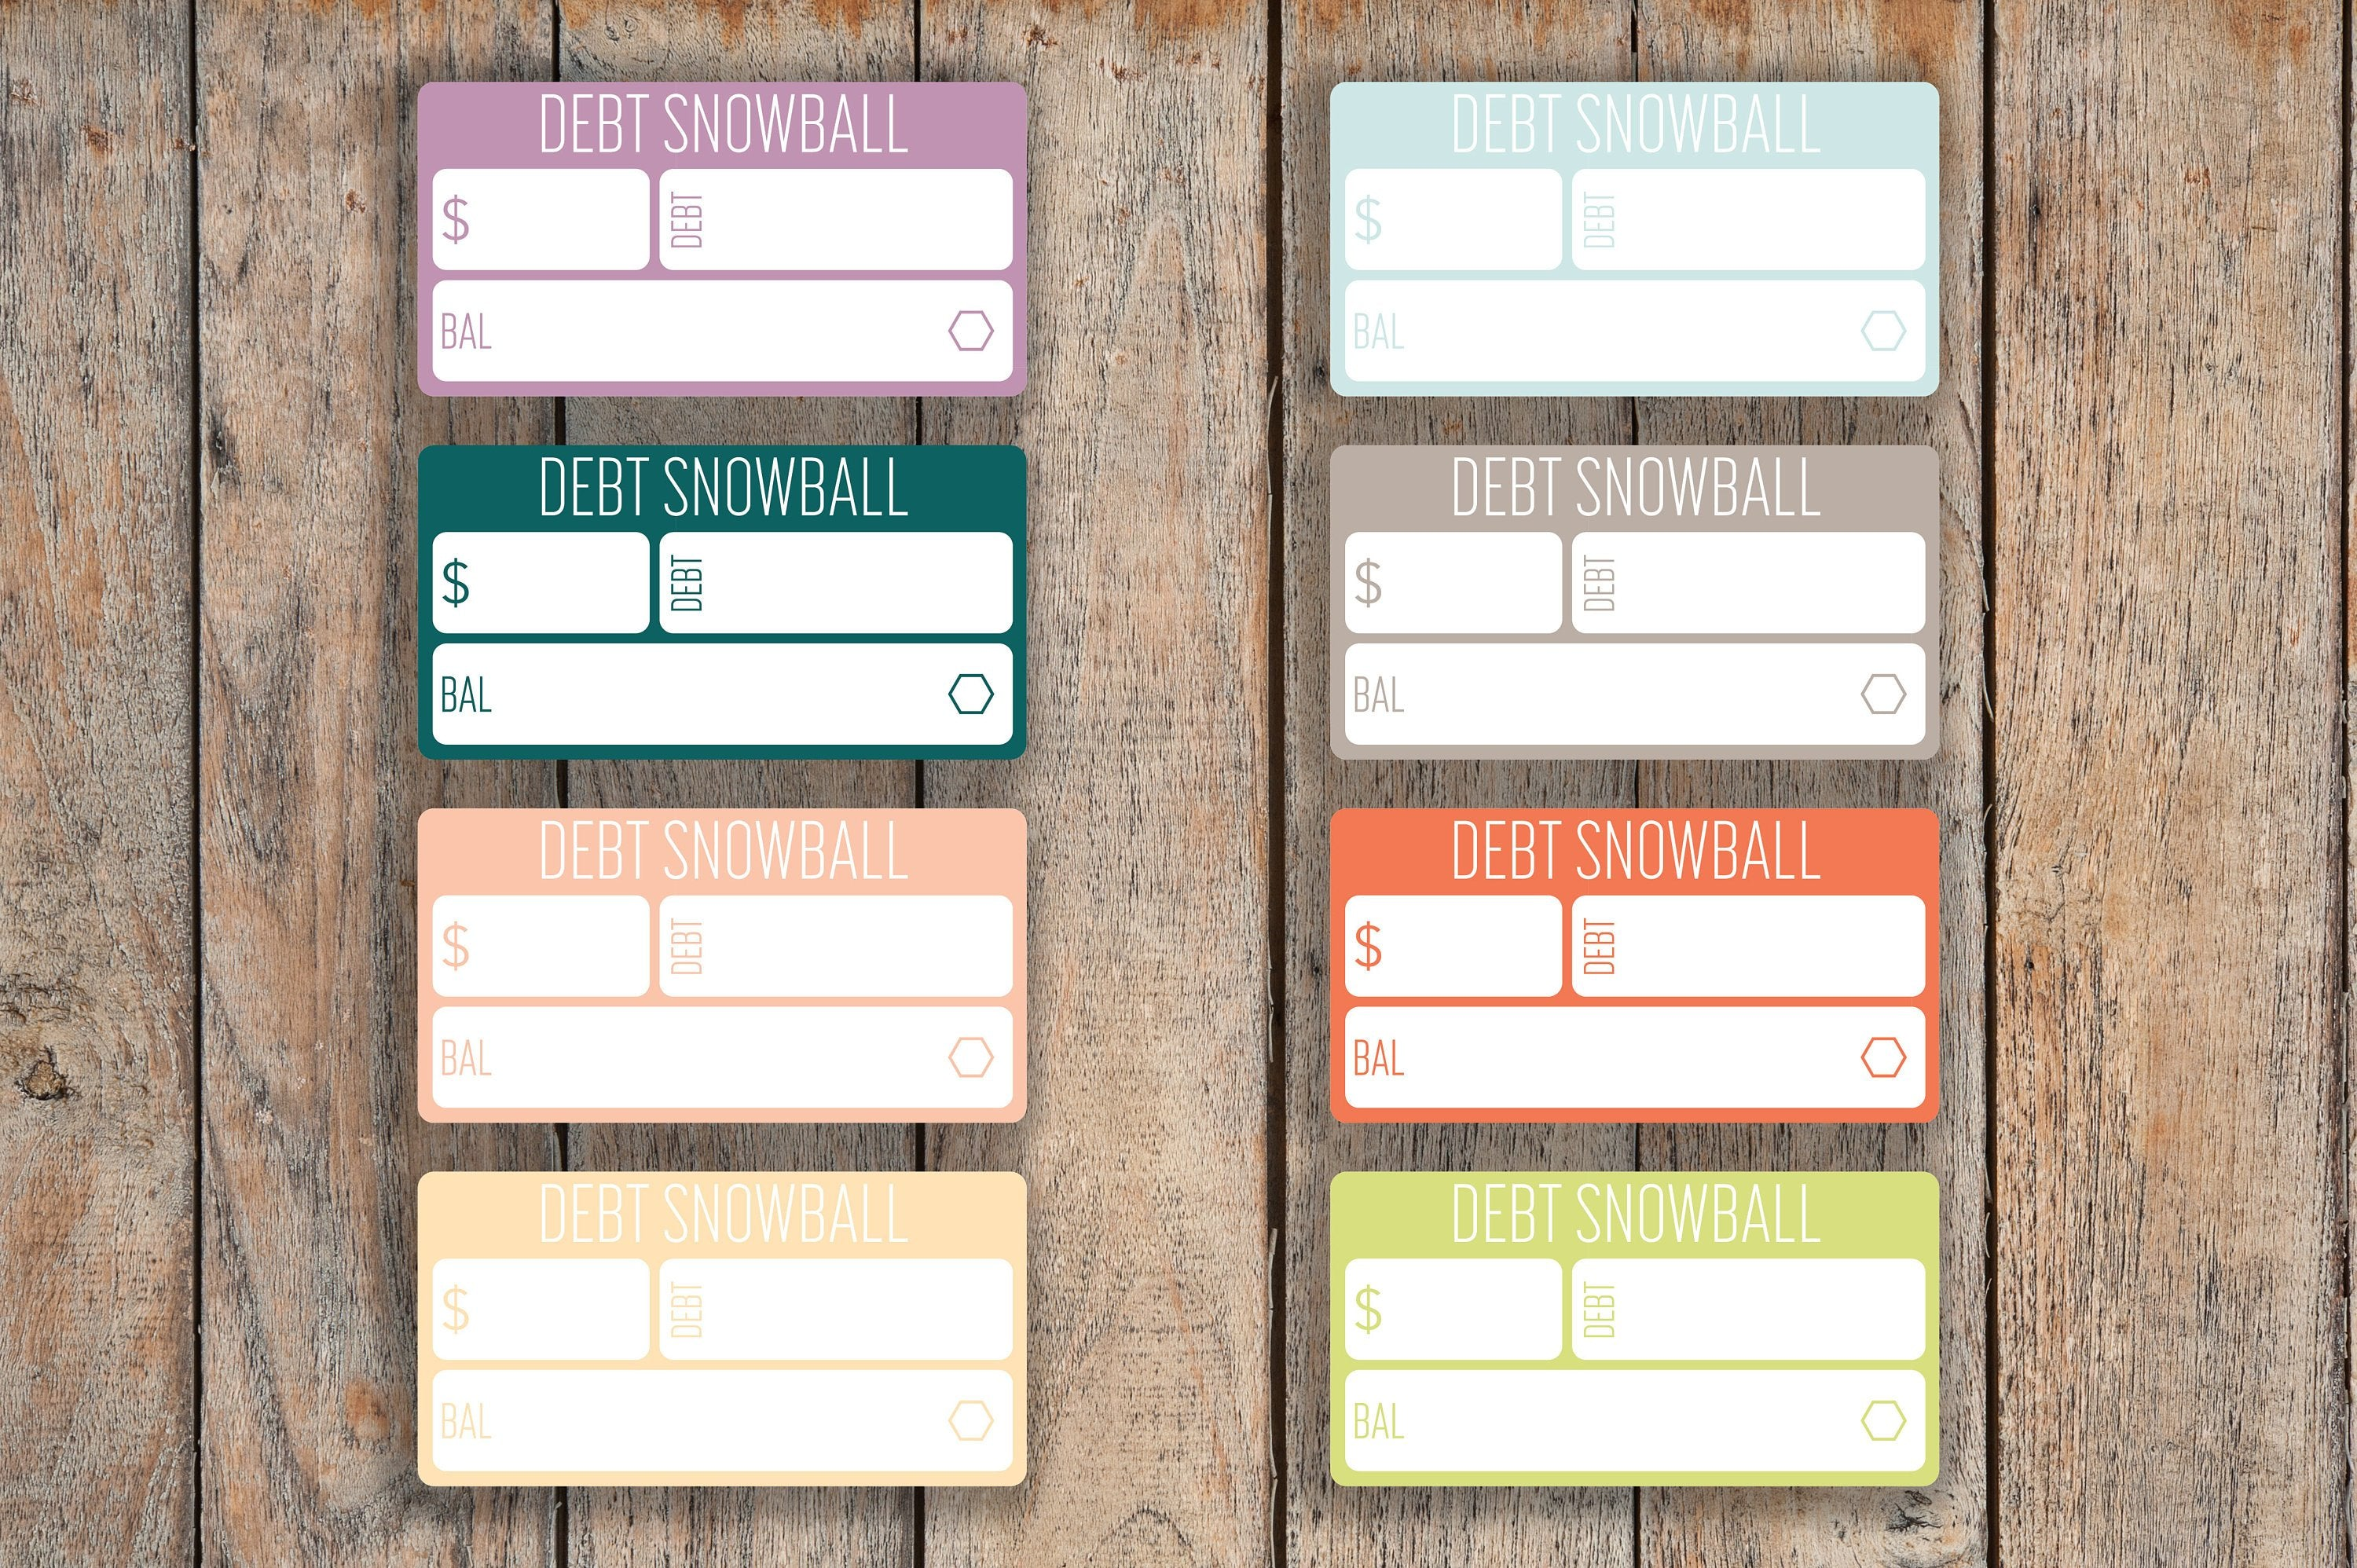 24 Debt Snowball, Bills, Debt Free, Monthly Bills, Money Budget Planning Stickers for 2018 inkWELL Press Planners IWP-L64